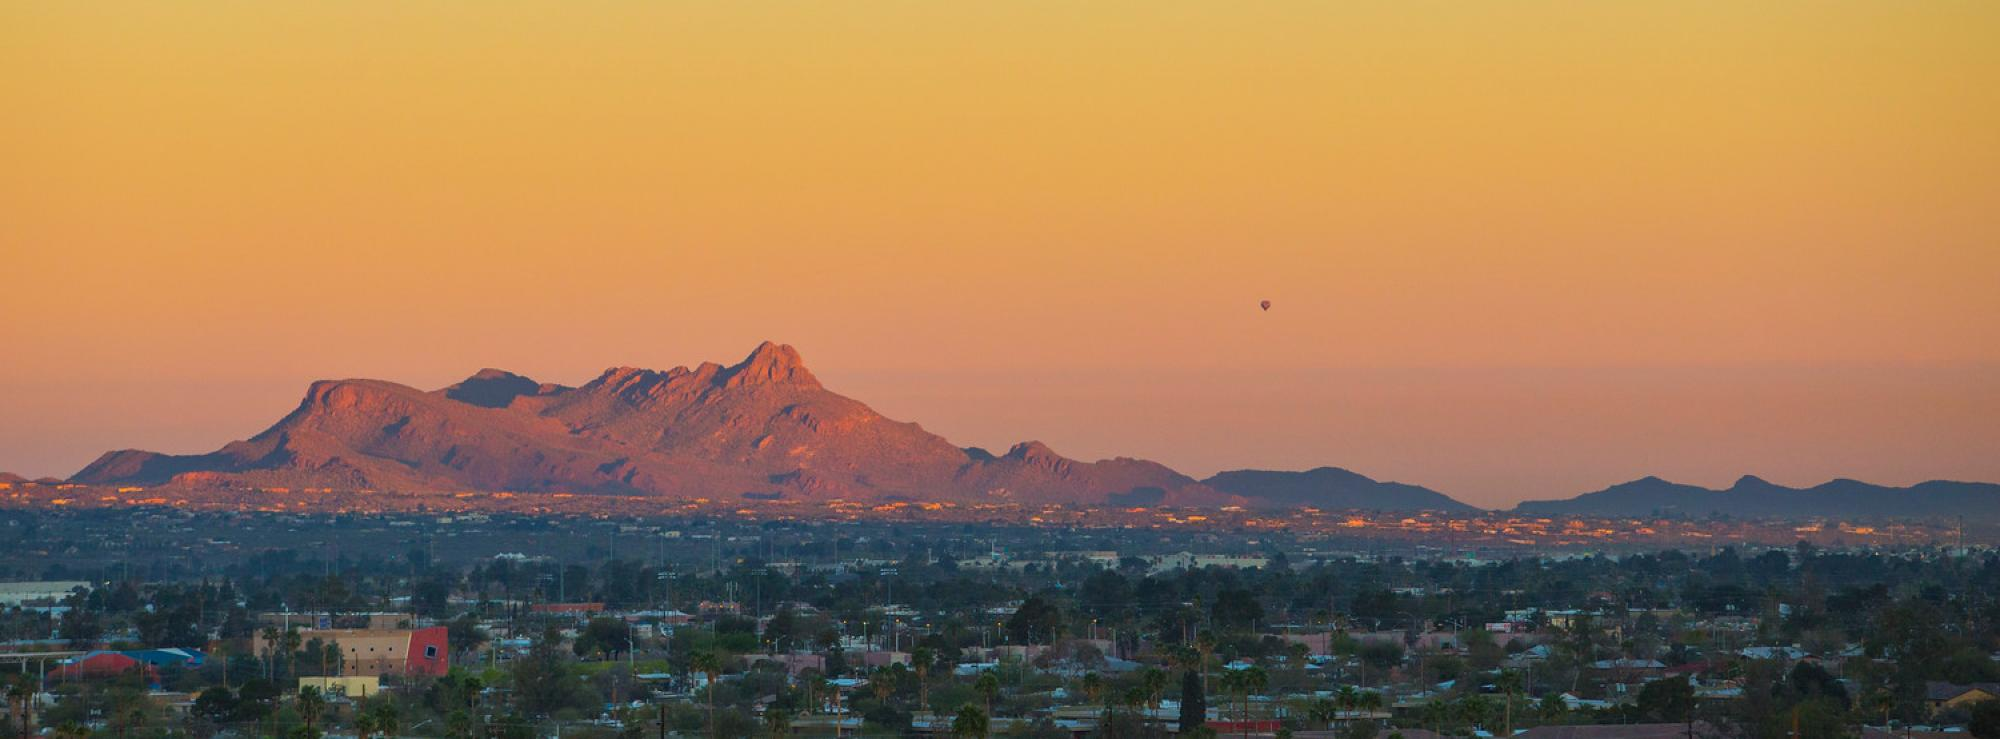 Sunrise shot of the Tucson area from the roof of the Thomas W. Keating Bioresearch Building (BIO5 Institute)